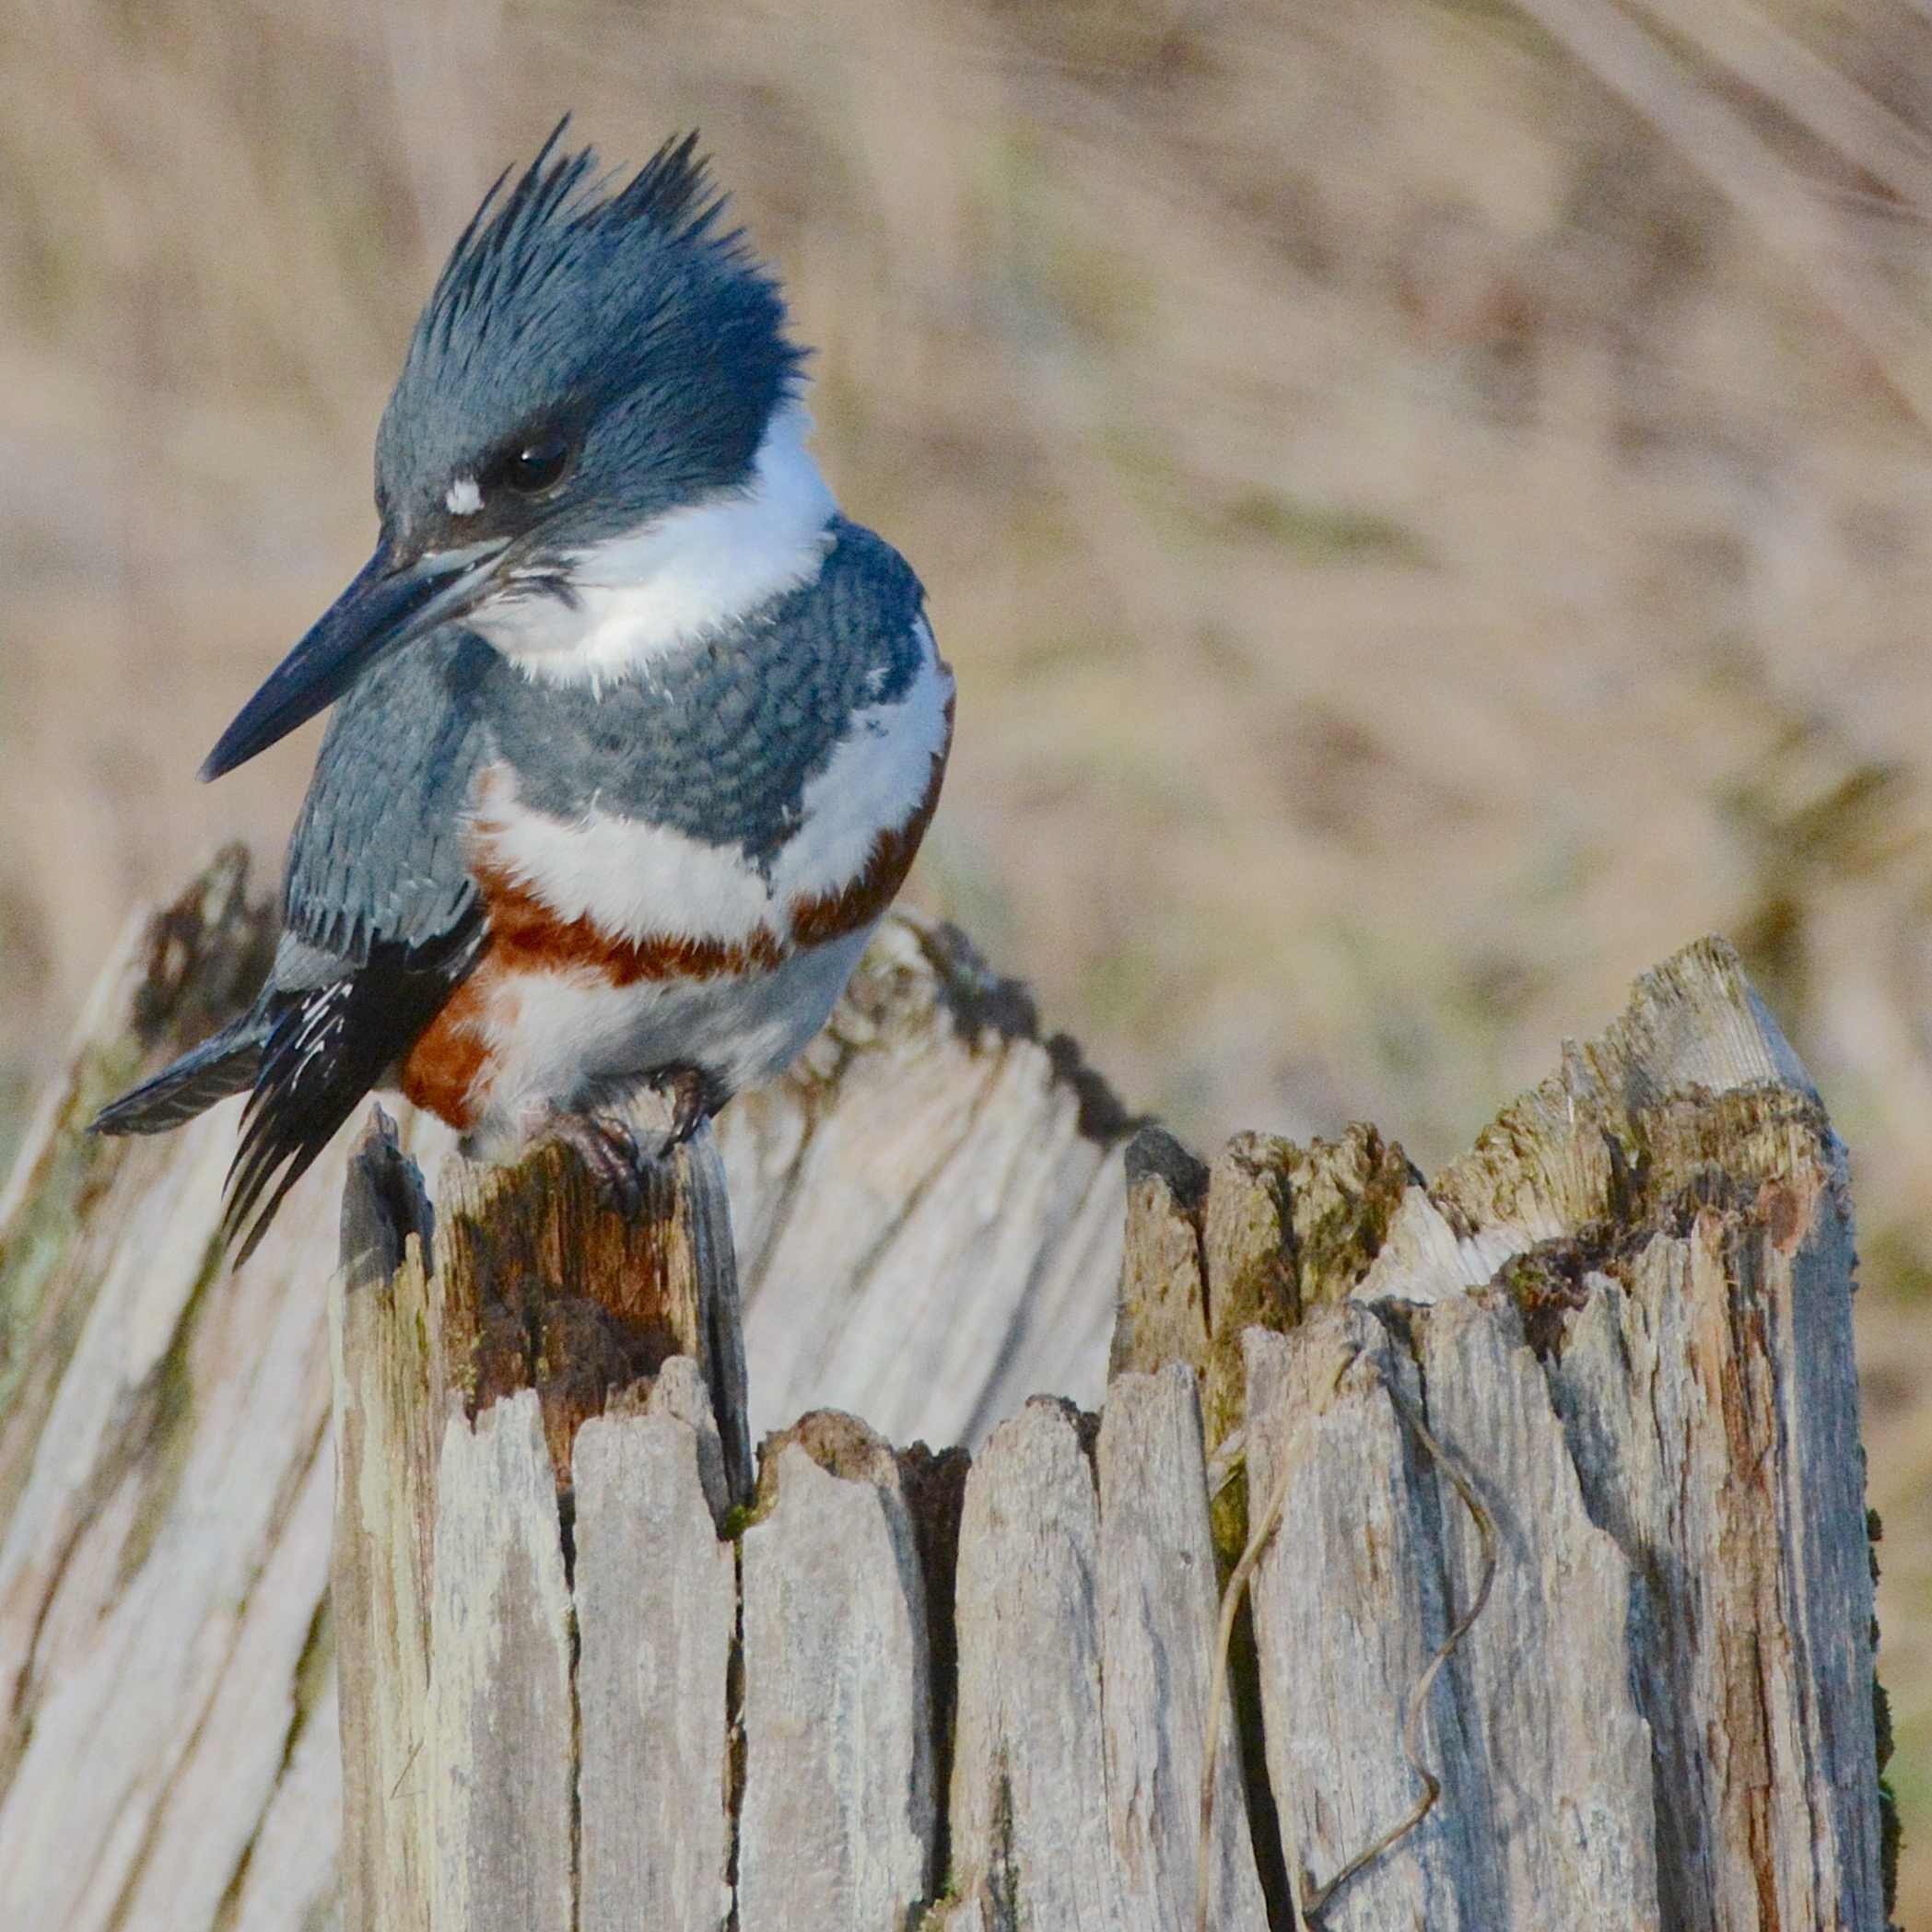 Photograph of Kingfisher provided by Jay Wiggs